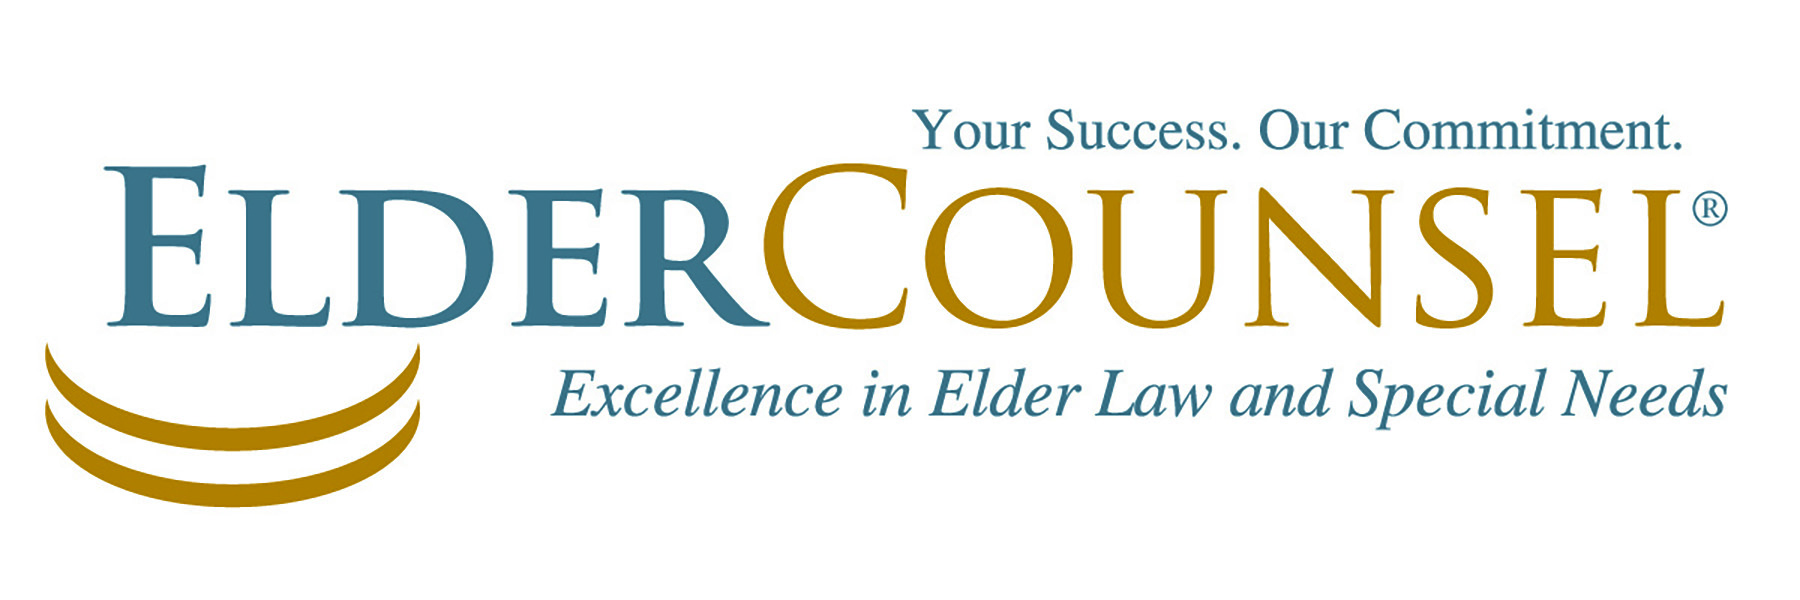 media/2017 Elder Counsel LOGO.jpg